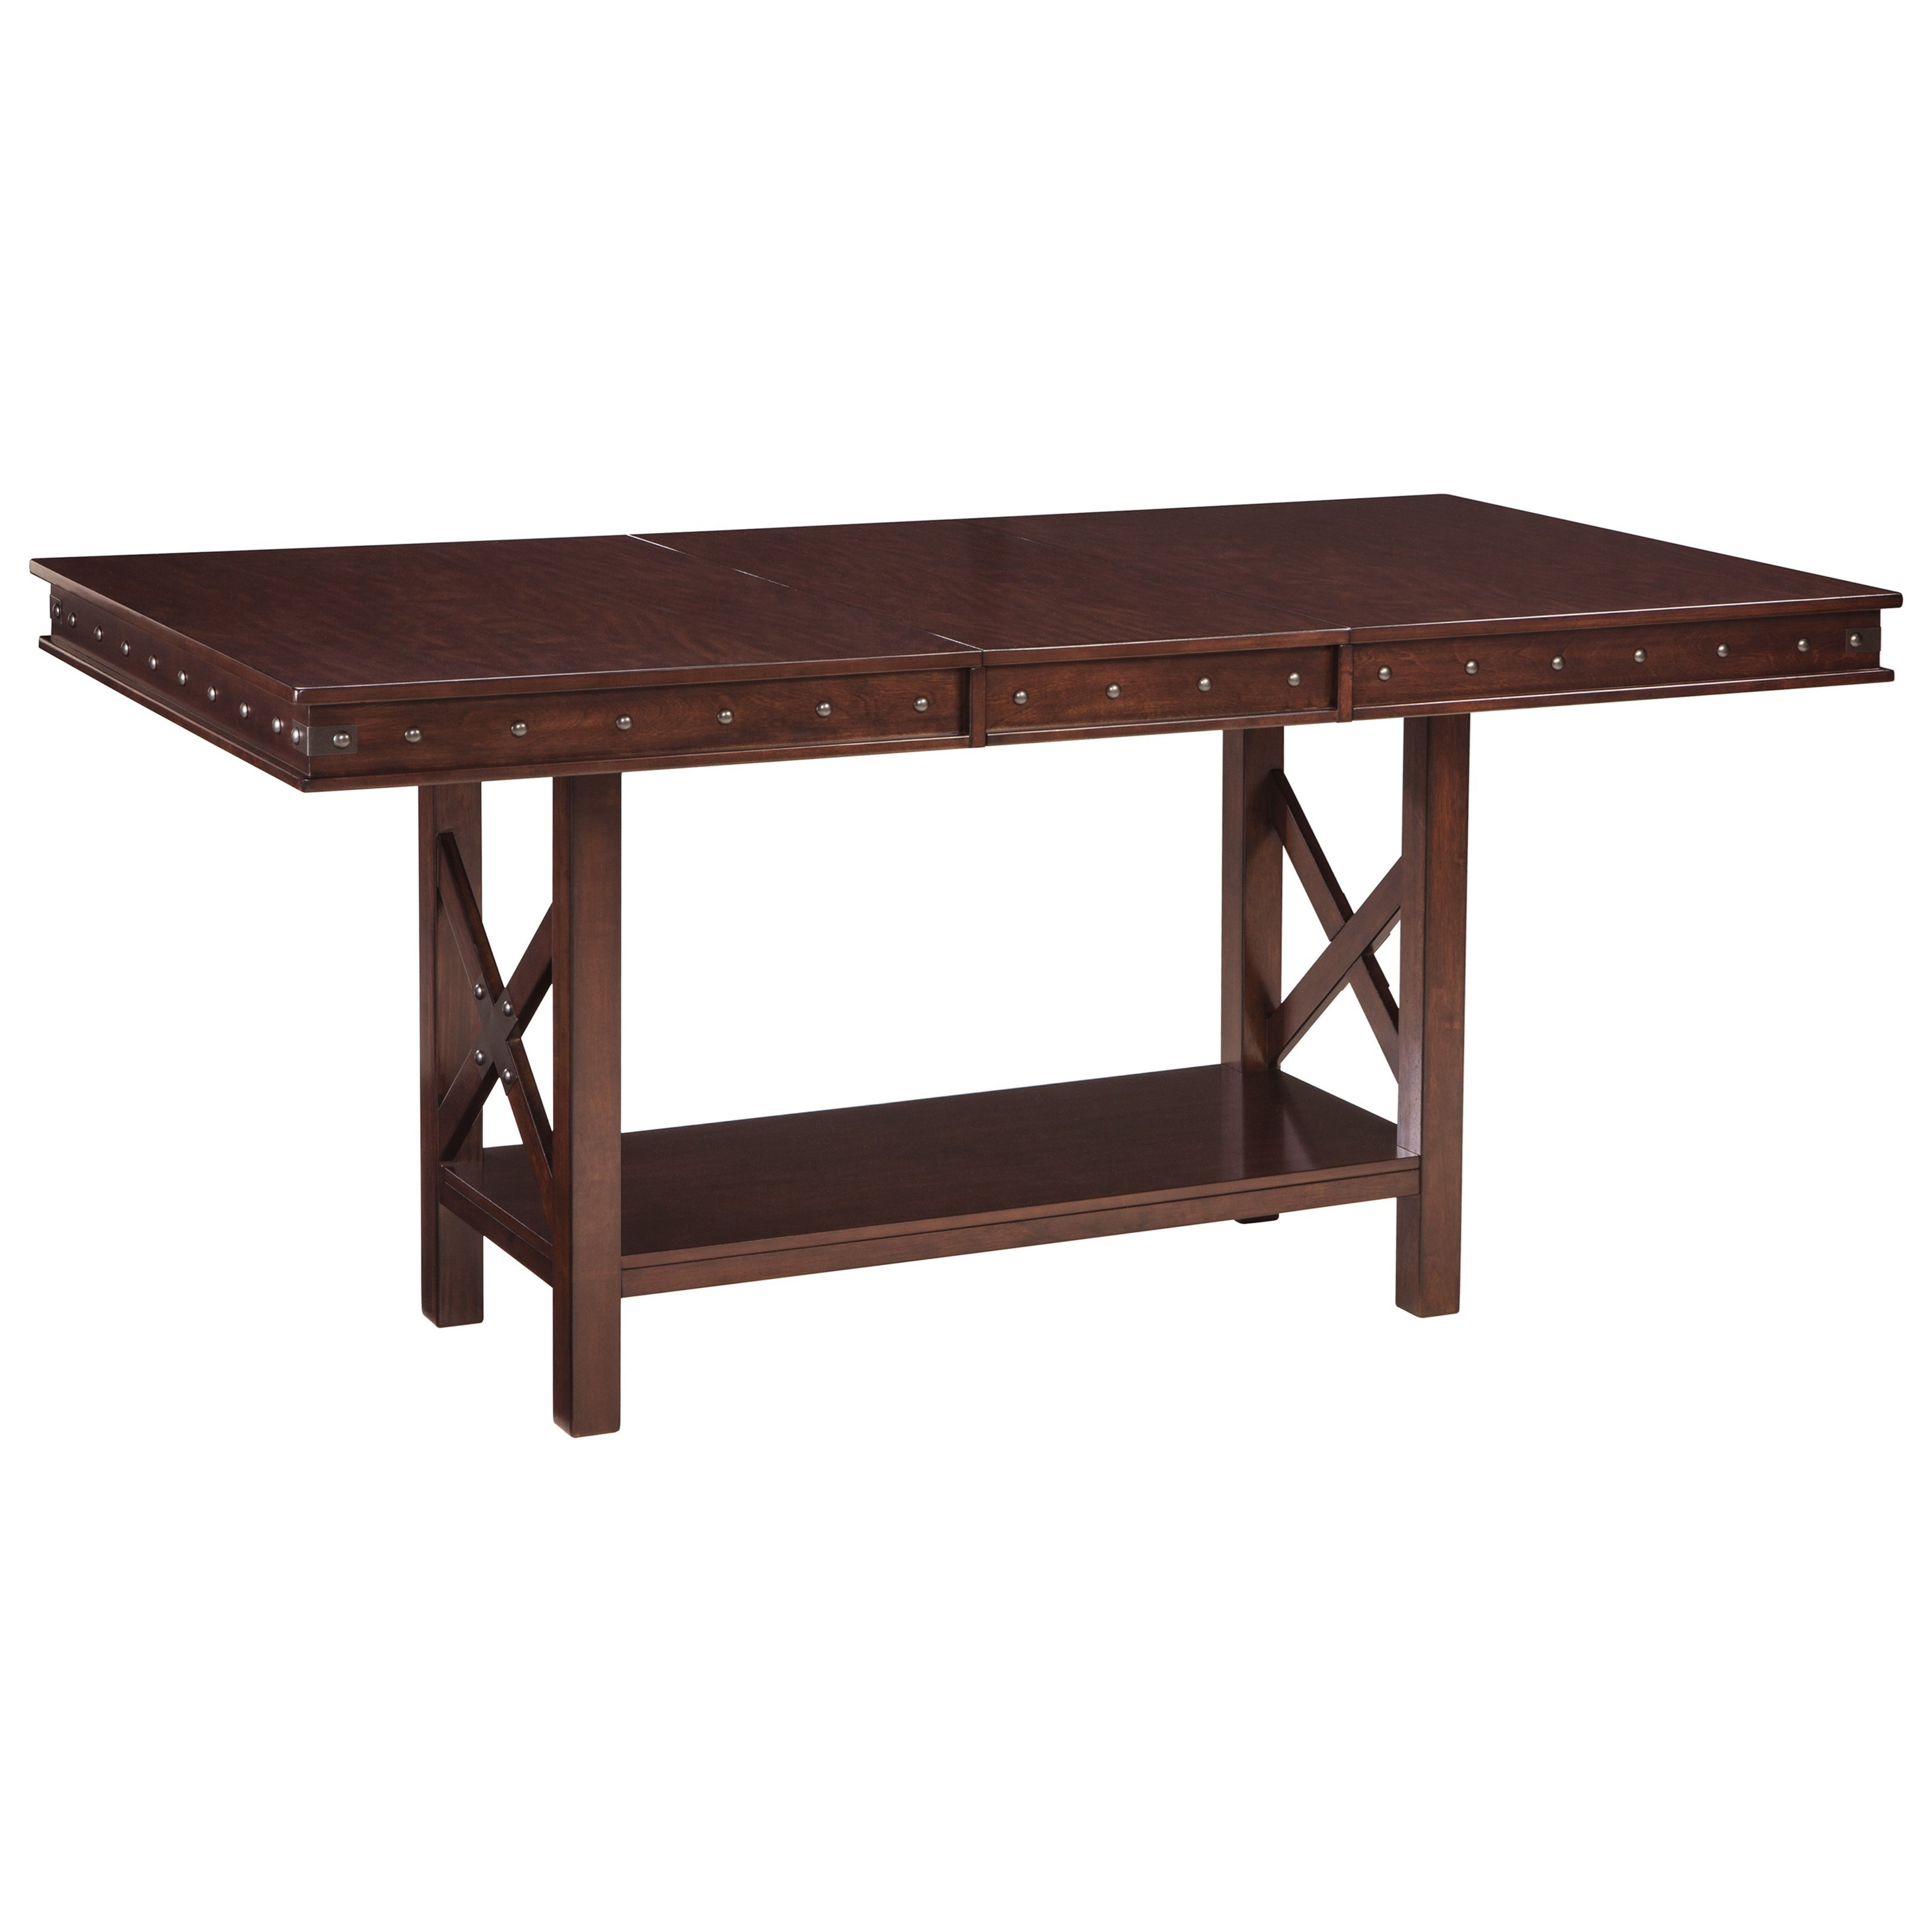 Ordinaire Signature Design By Ashley CollenburgRectangular Dining Counter Extension  Table ...